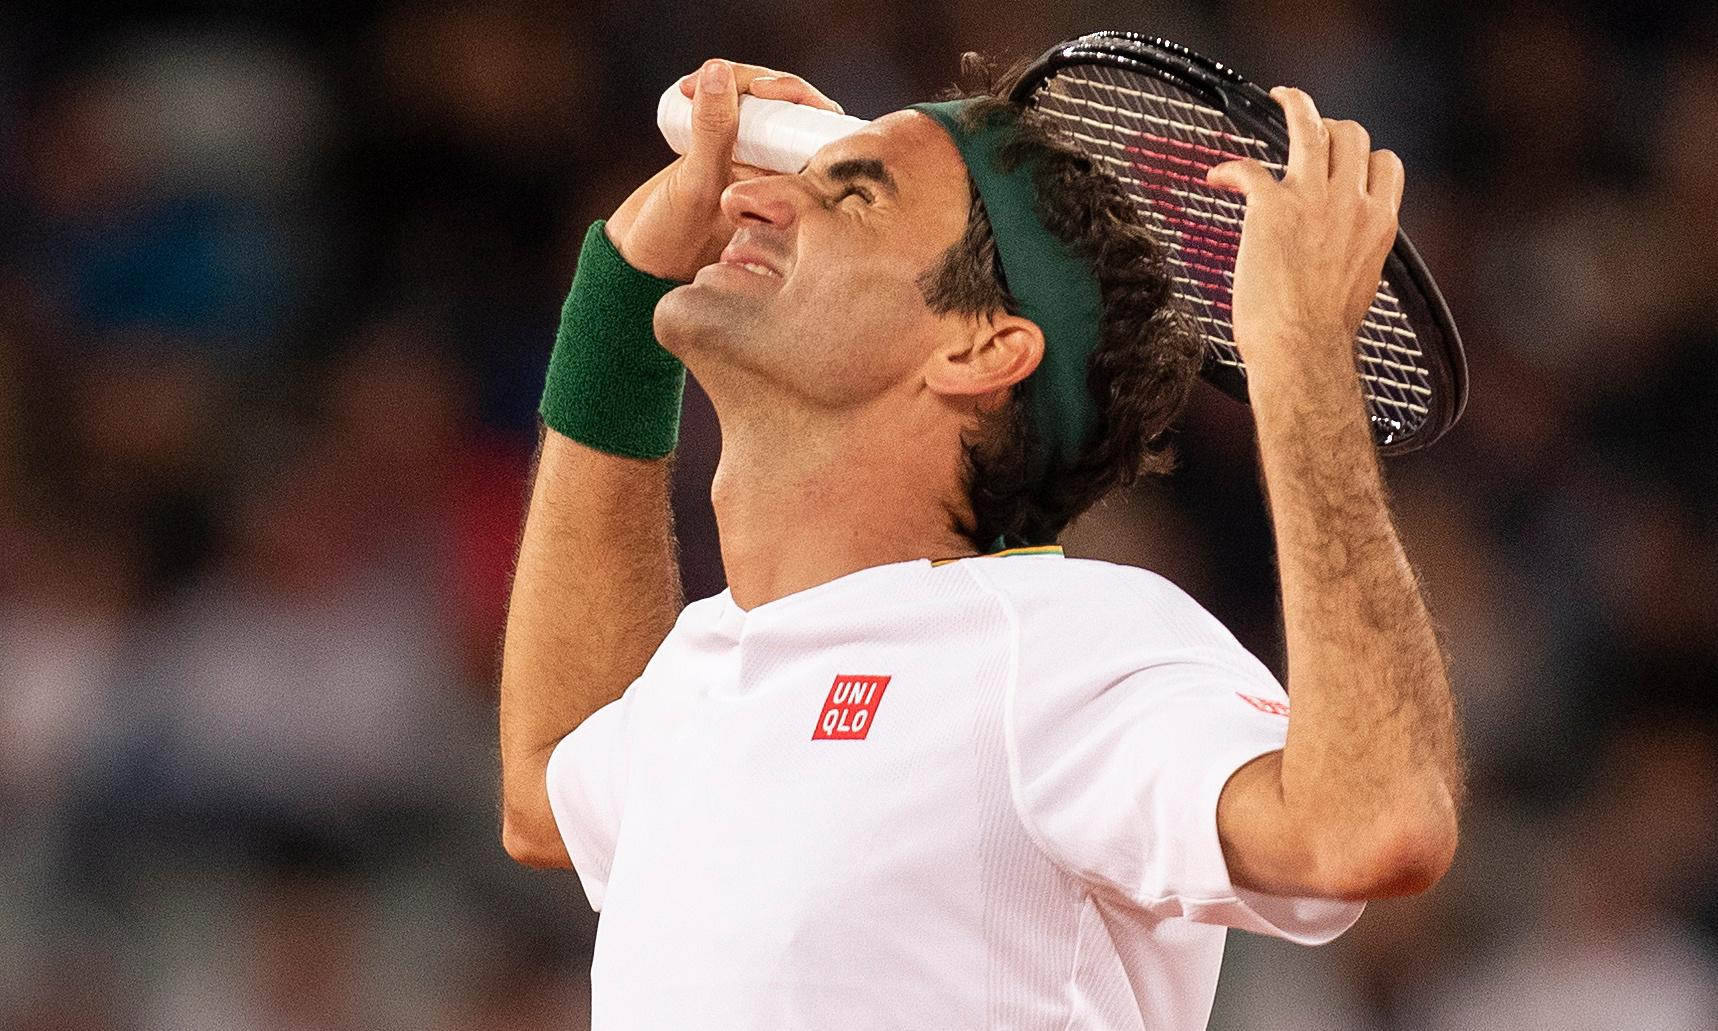 Roger Federer ruled out of French Open as doubts swirl again over future